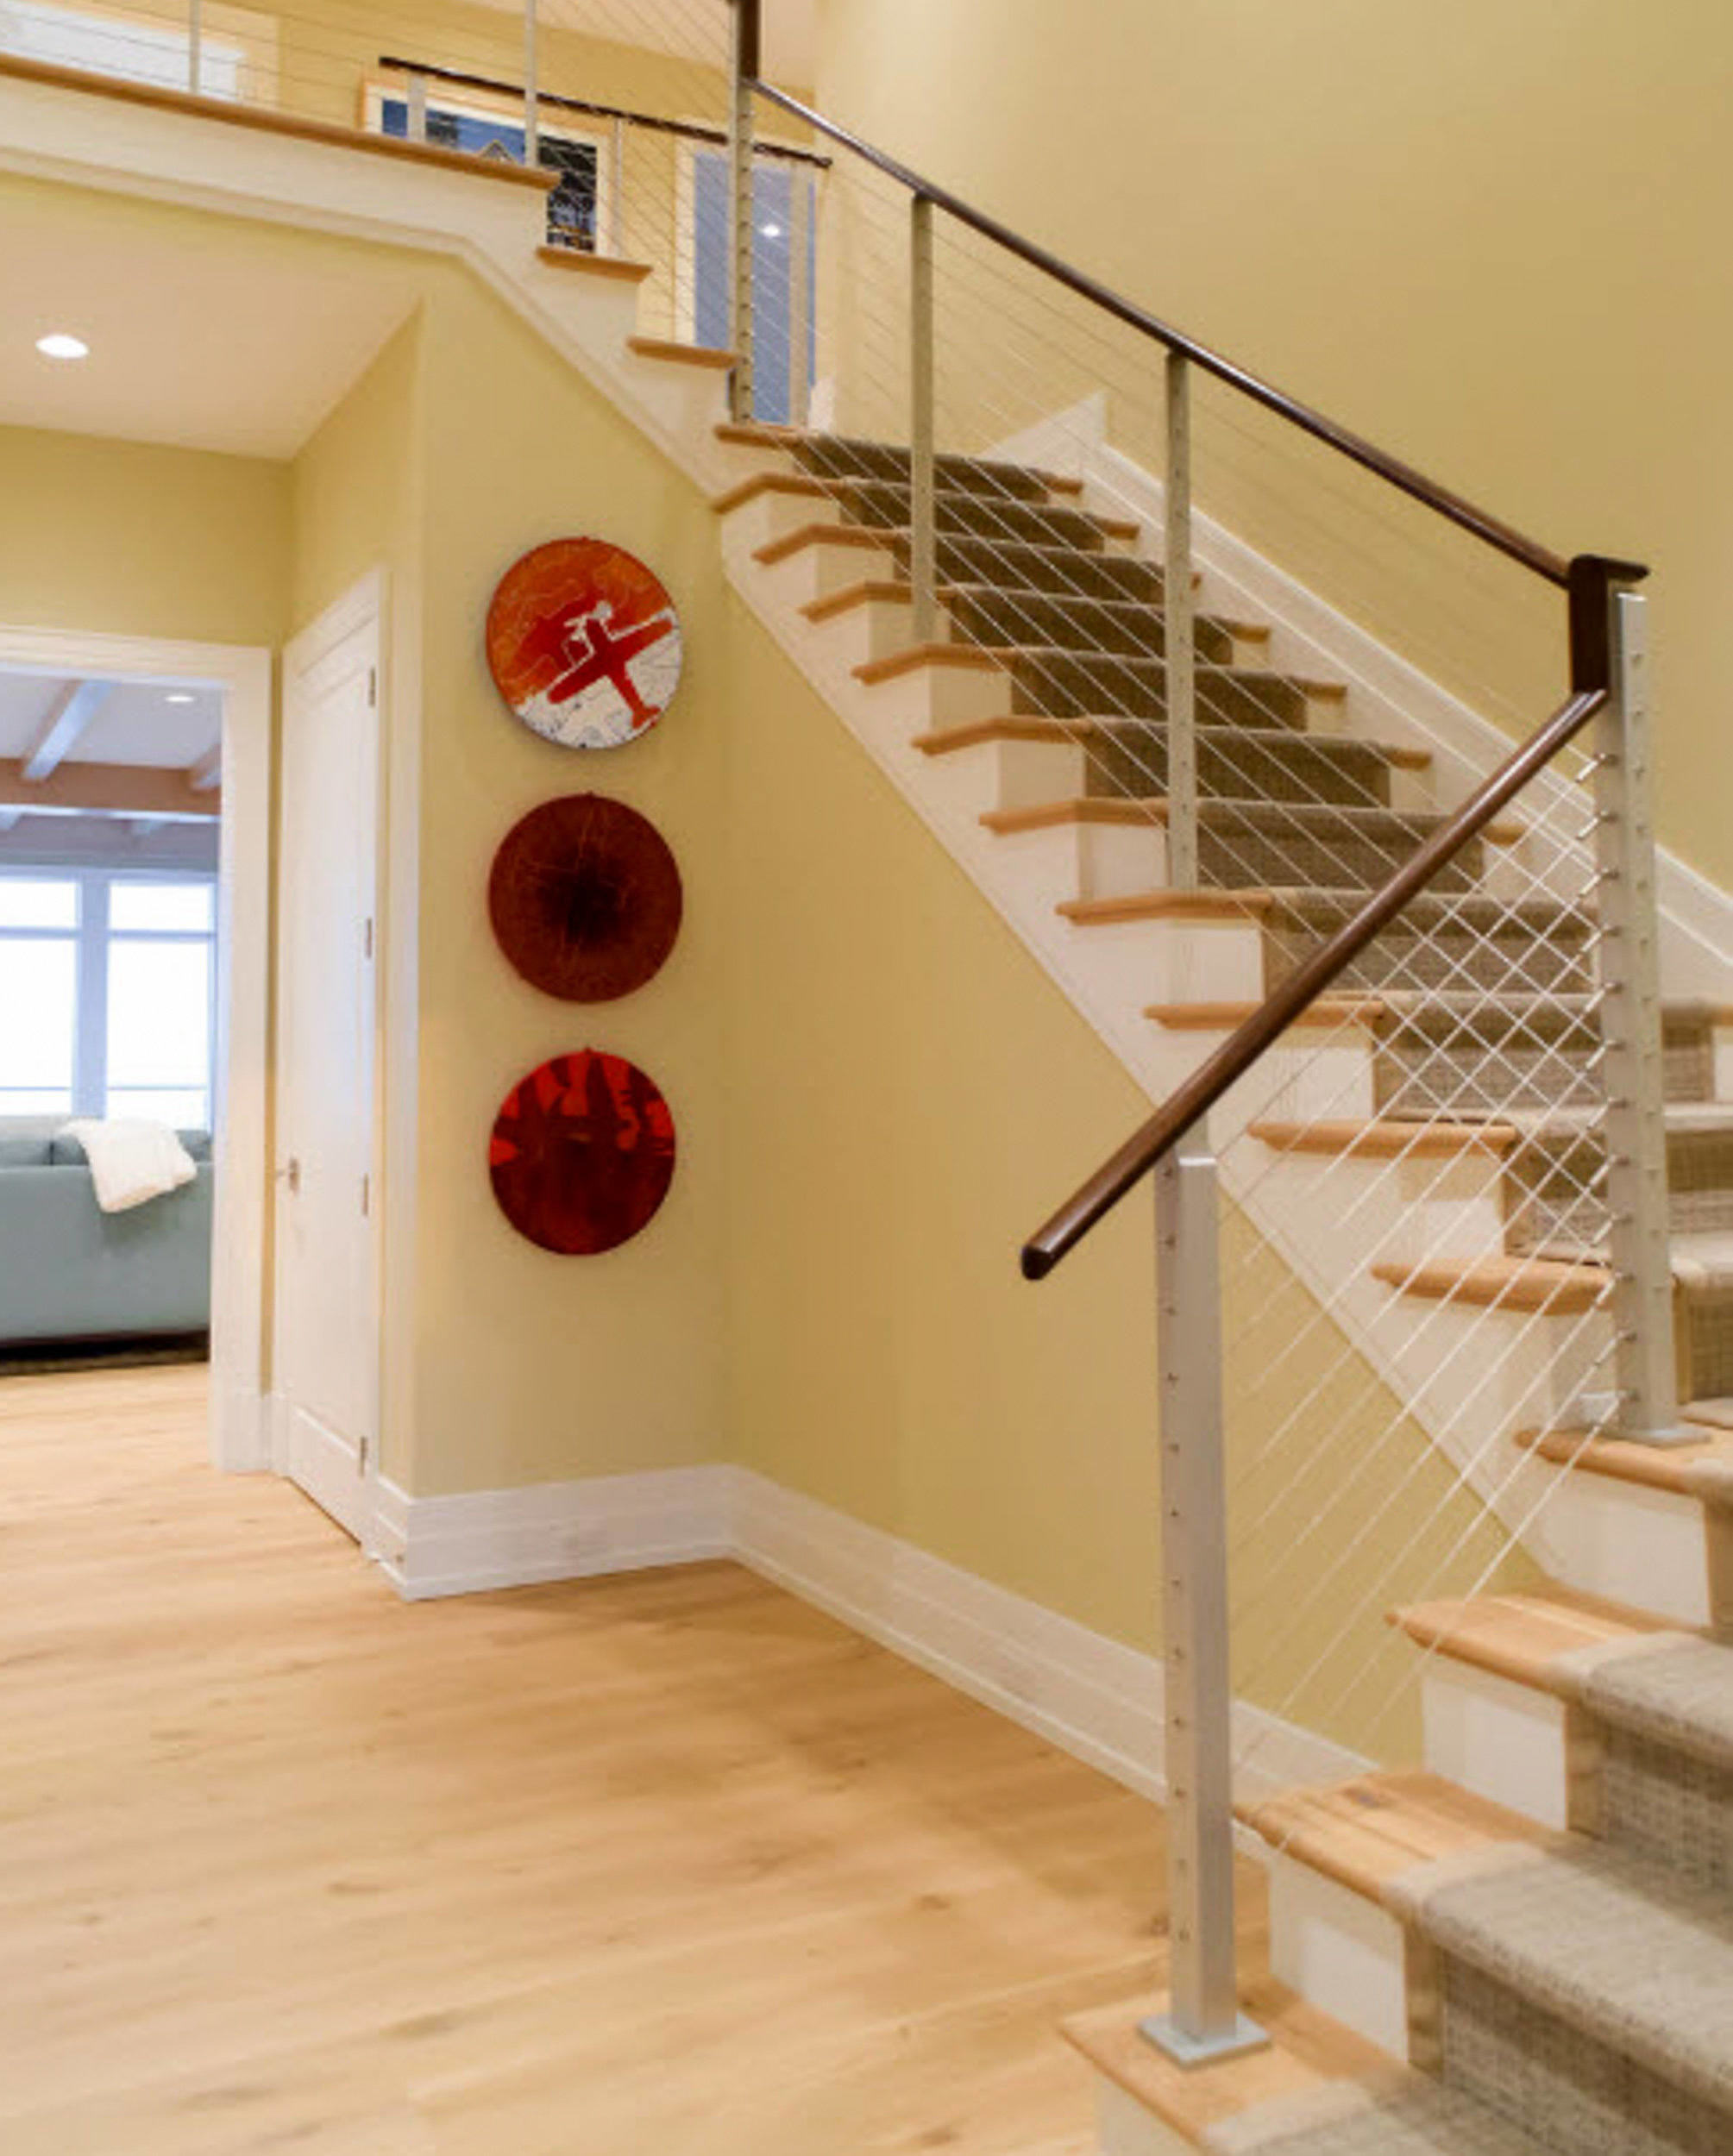 Beach house interior stairs with cable railing and dark wood top rail.